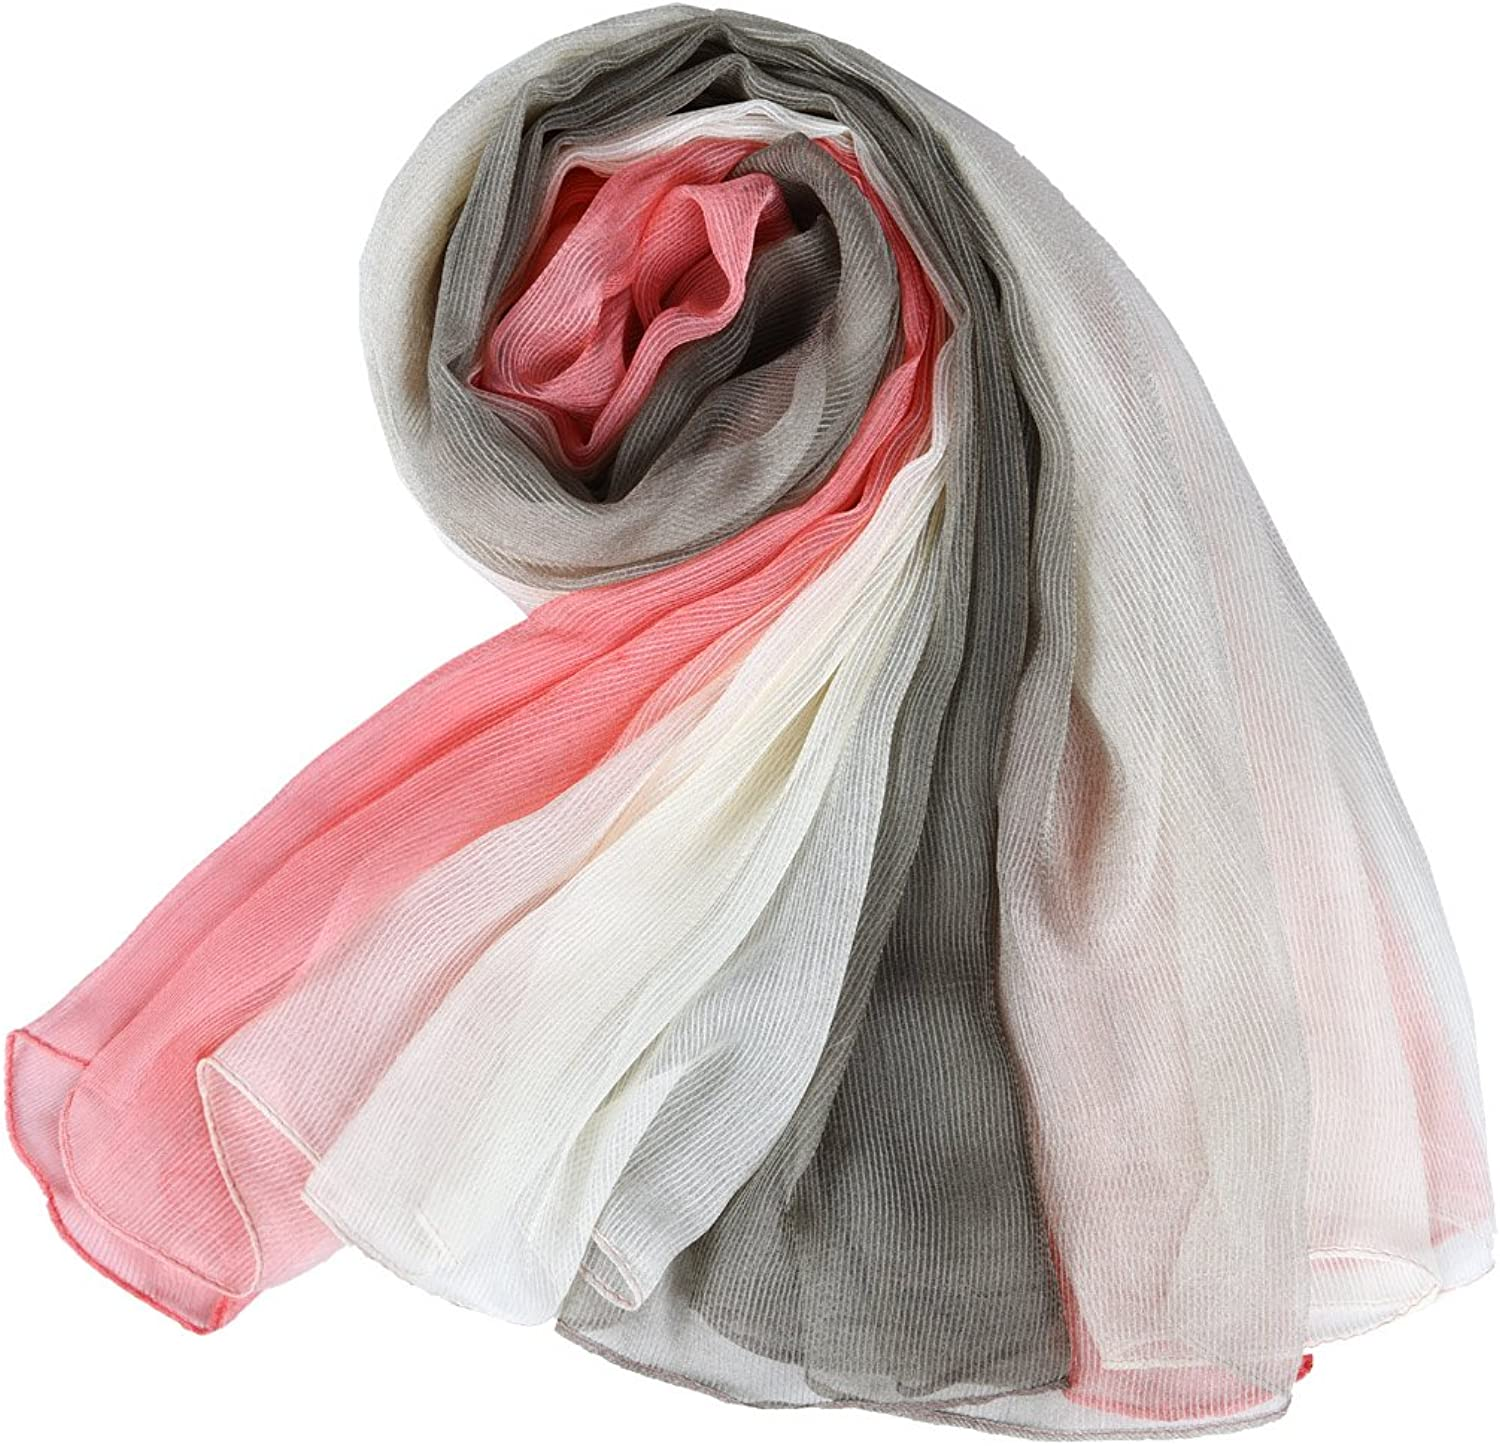 Crinkle Stretch Silk Scarf, Faurn Women Soft Light Weight Oversized Silk Scarf Gradient colors